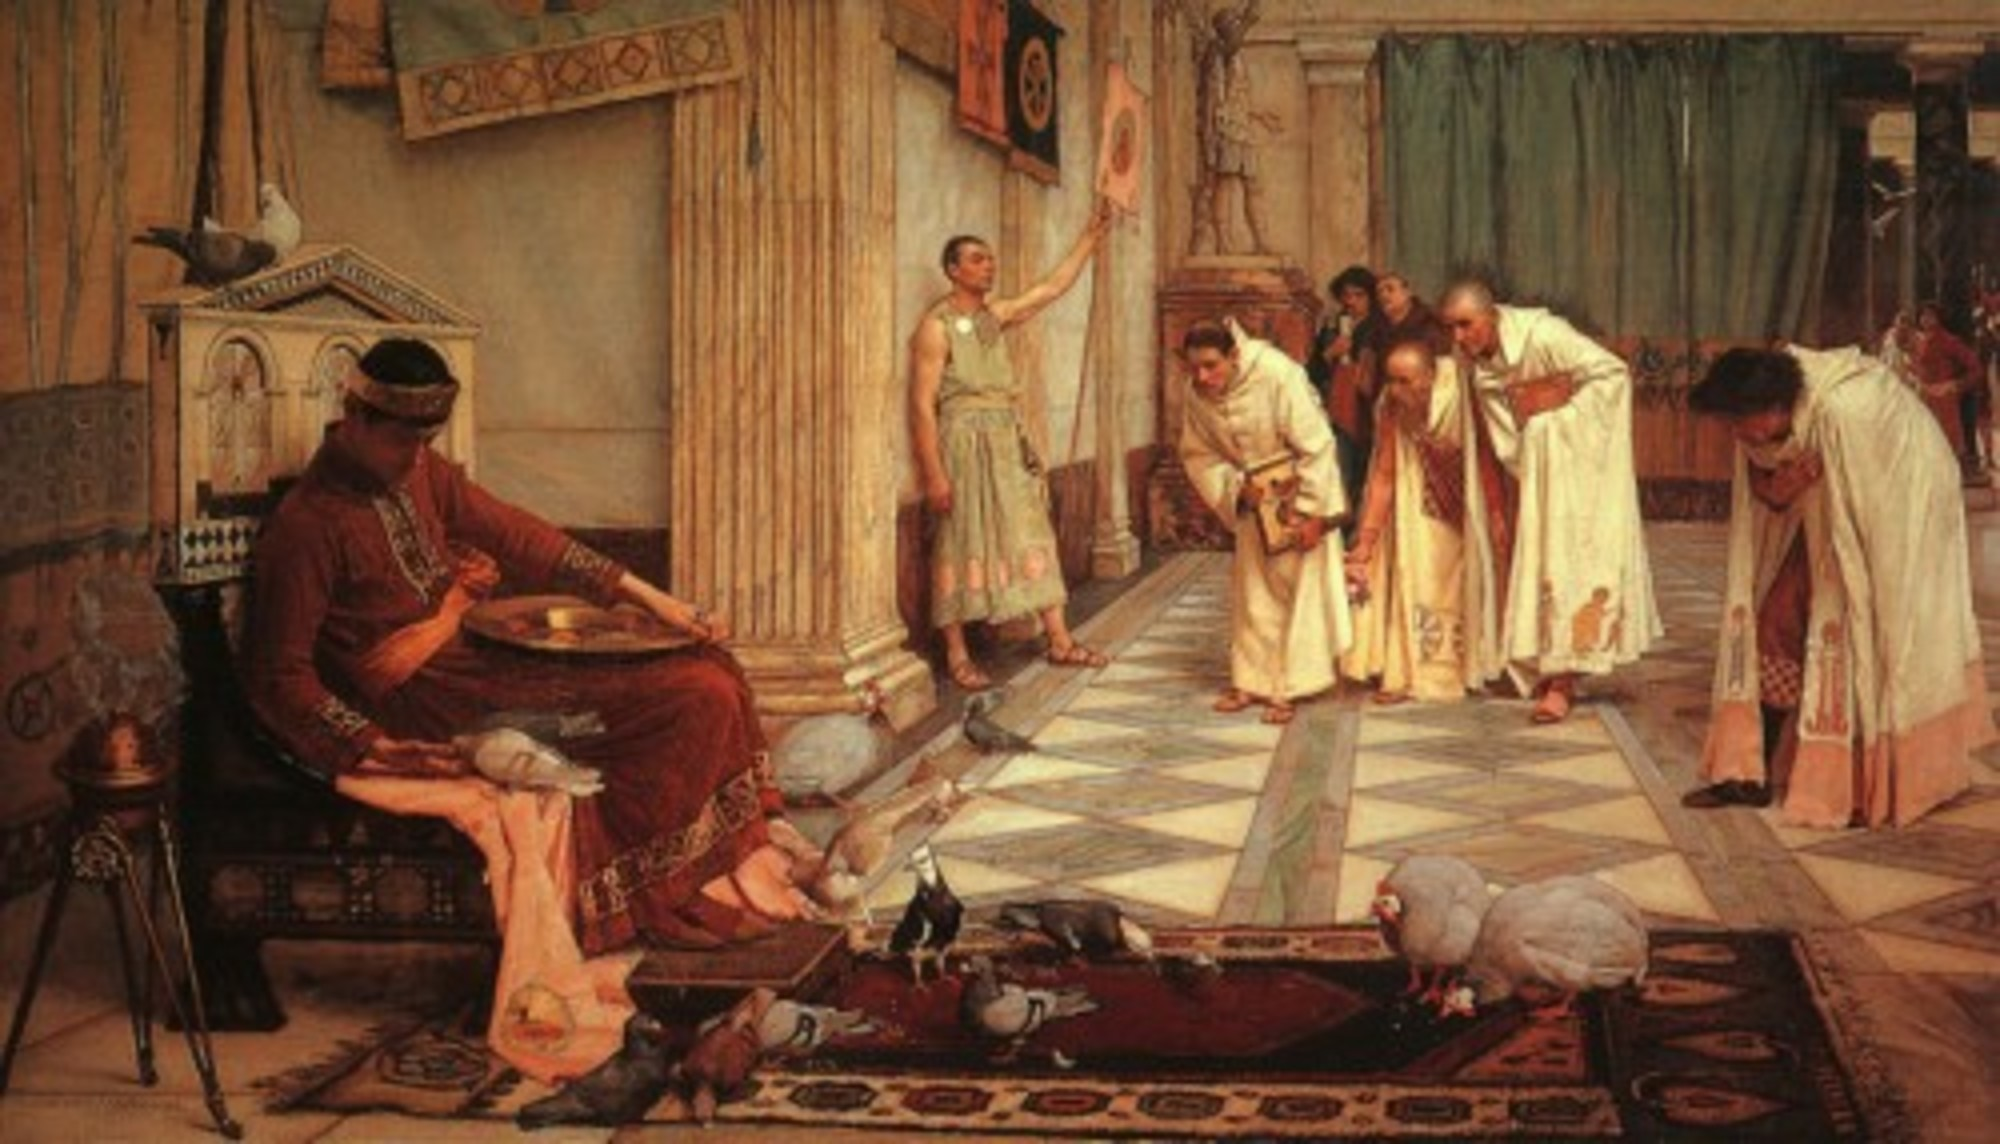 John_William_Waterhouse_-_The_Favorites_of_the_Emperor_Honorius_-_1883.jpg